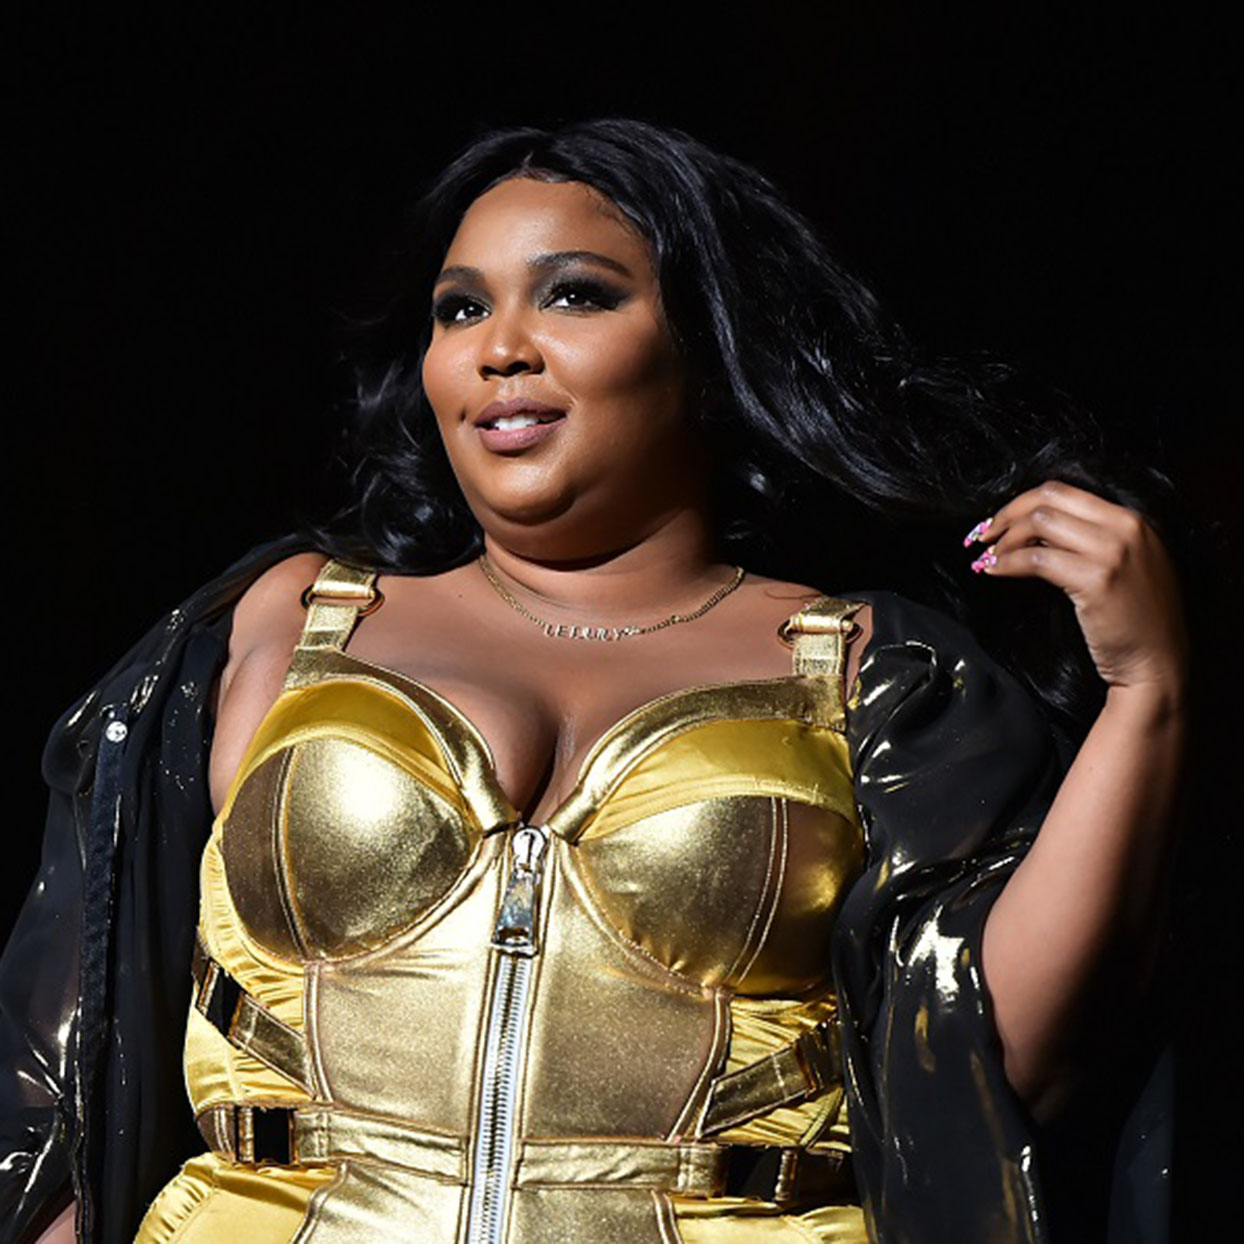 Lizzo performs during a concert.